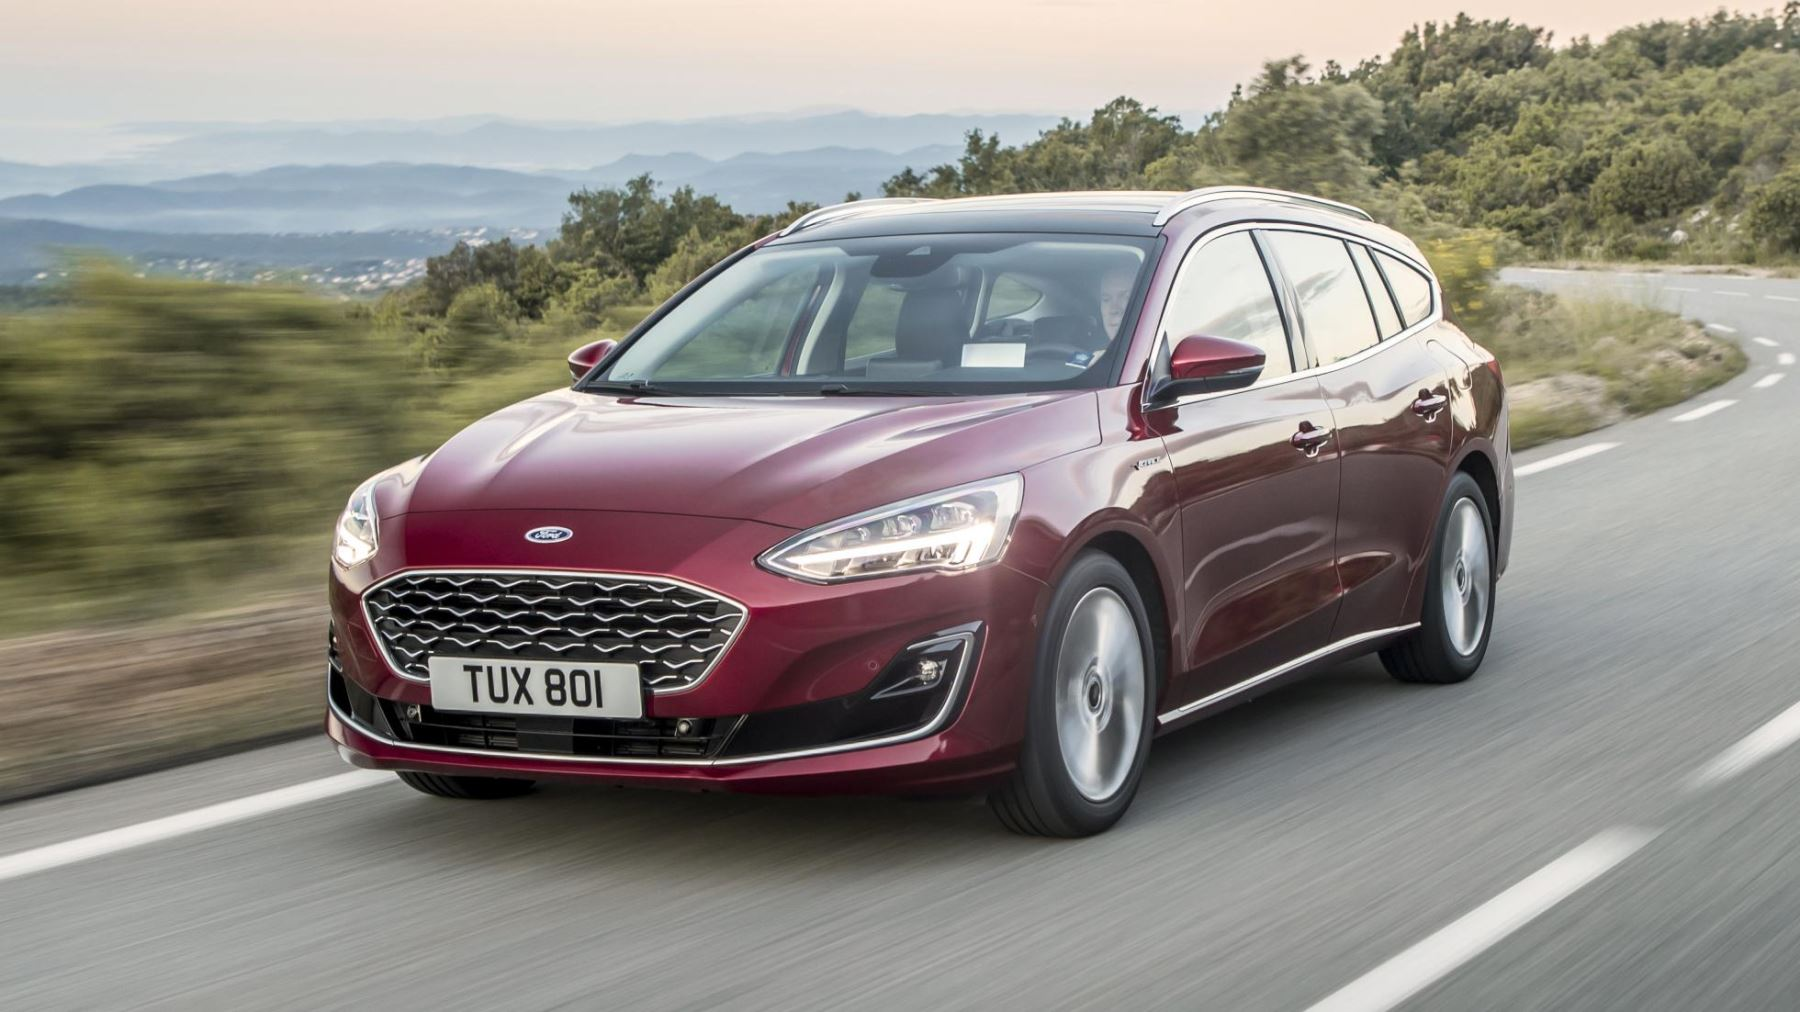 Ford Focus Titanium X 2.0 Diesel 150ps Diesel 5 door Estate (2019)